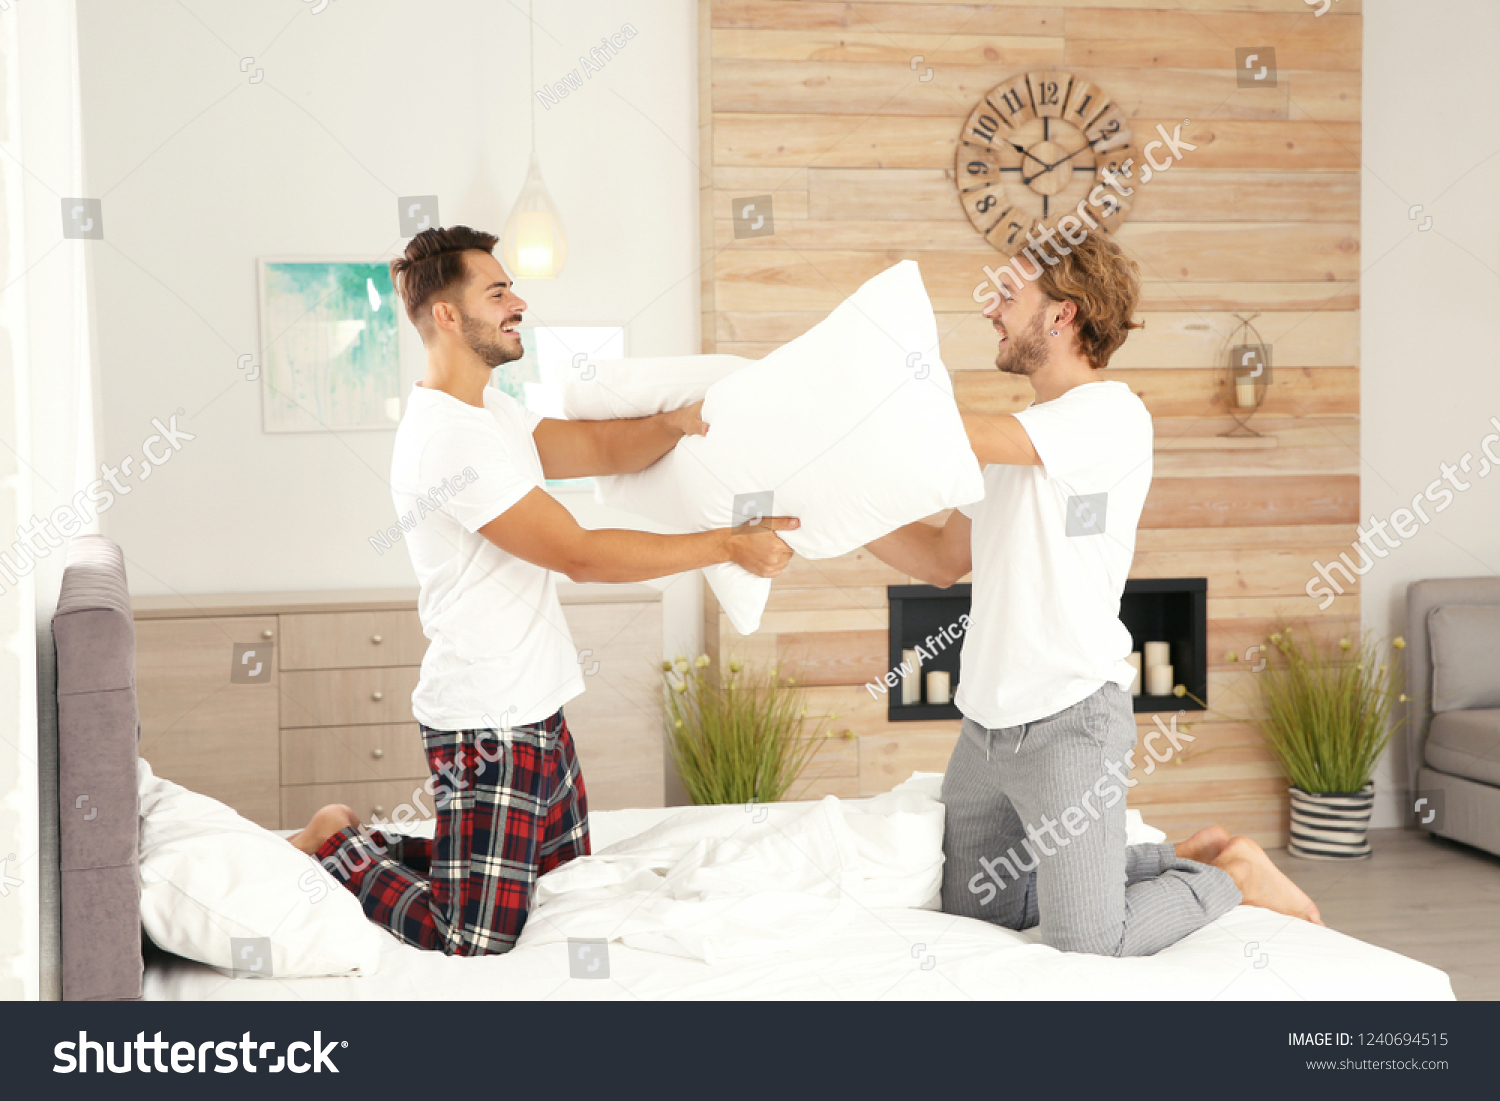 Gay pillow fight